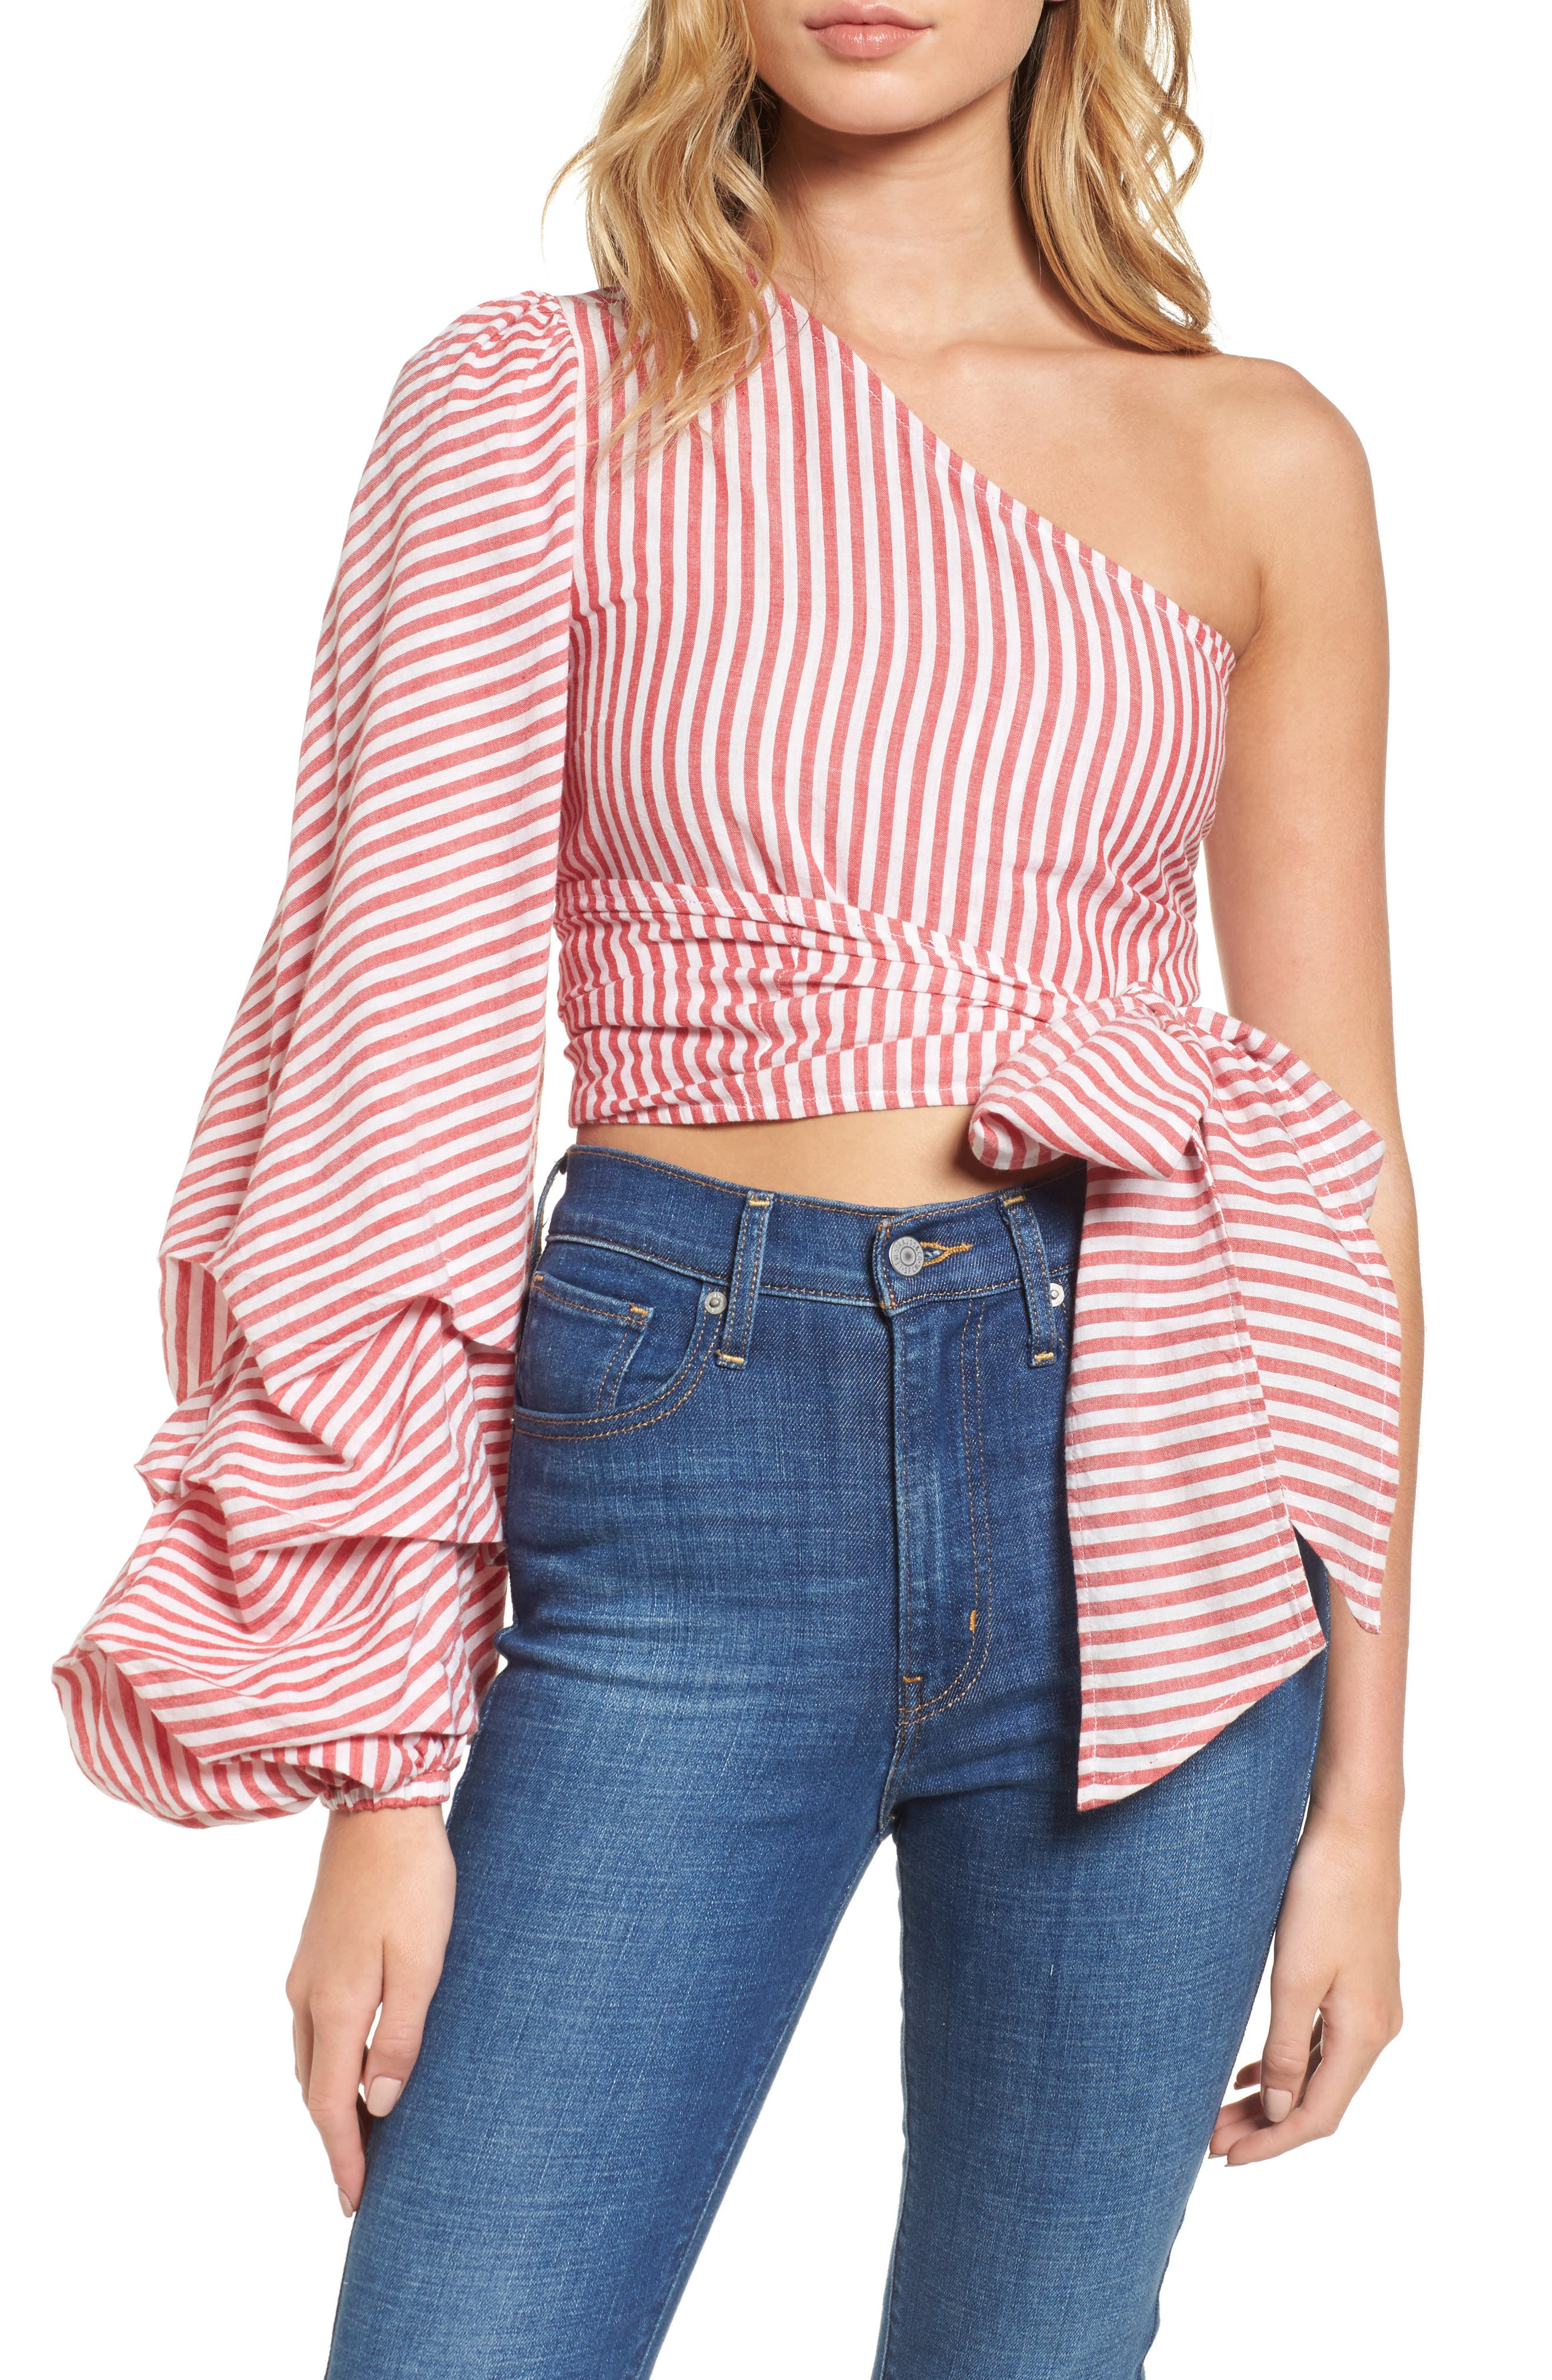 L'Academie Reckless One-Shoulder Wrap Blouse,                         Main,                         color, Red/ White Stripe